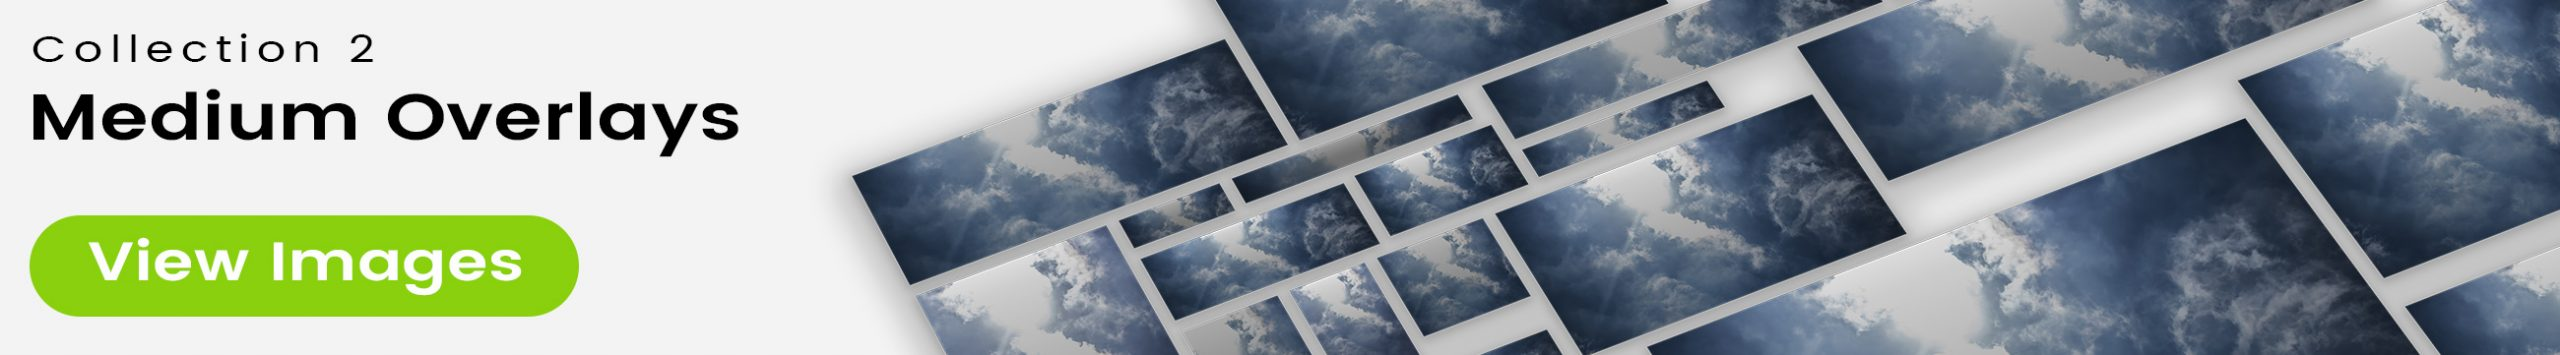 See 25 bonus images included with clouds stock image 9462. Collection 2 of 4 features a medium-dark overlay design.